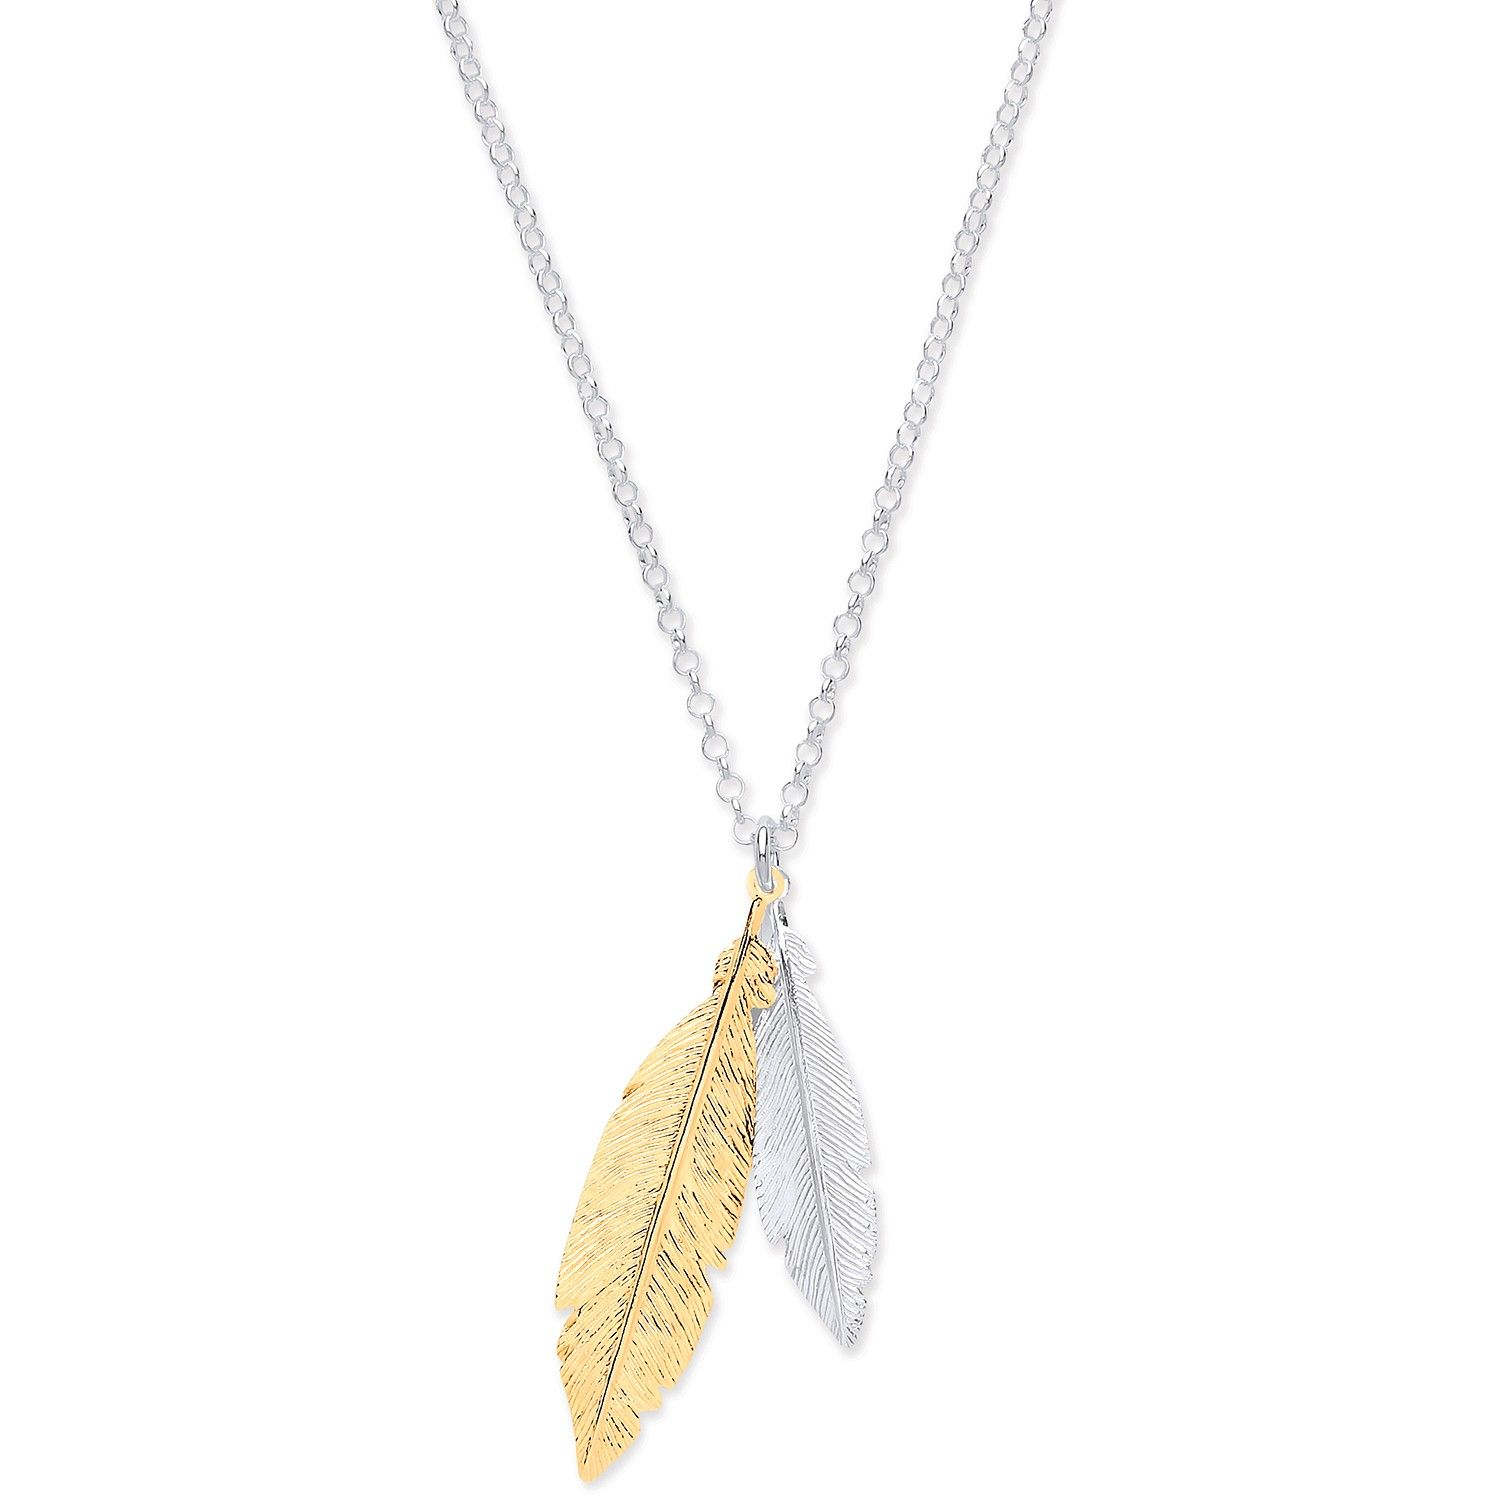 Silver & Gold Coated Feathers Necklace 16